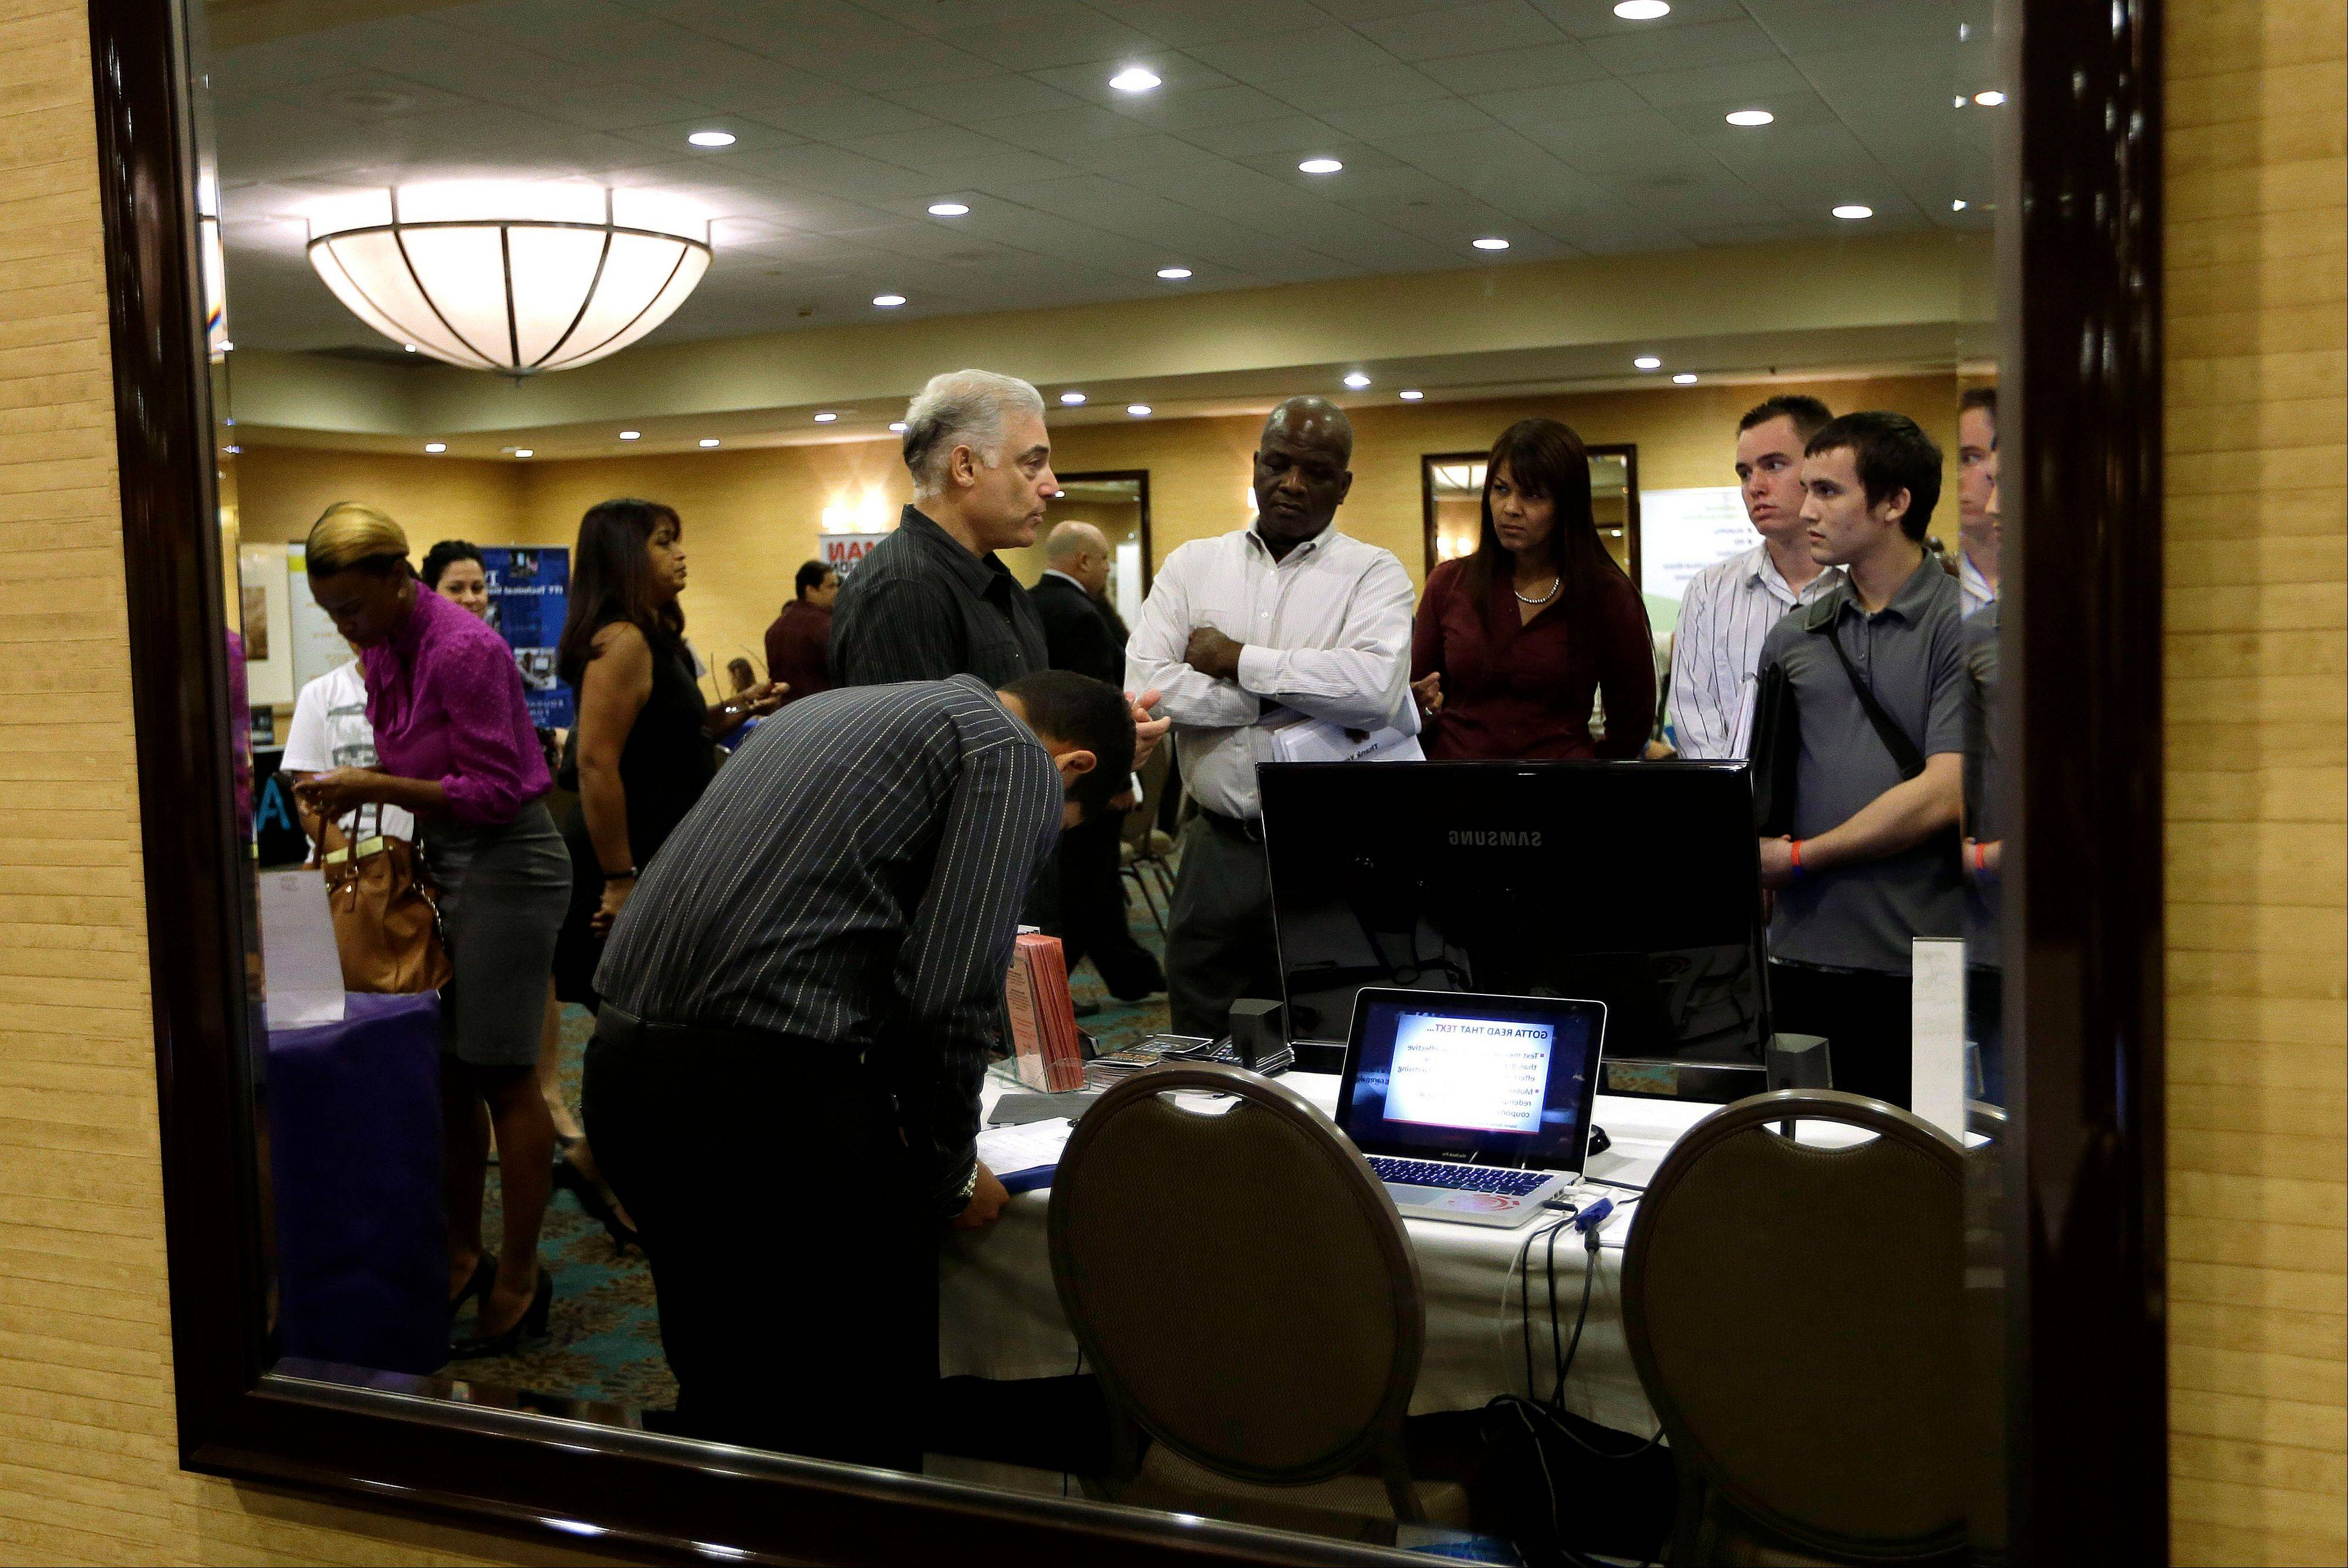 Robert Orkin, of the company TxT-Alert, third from left, talks with job seekers during a job fair held by National Career Fairs, in Fort Lauderdale, Fla.